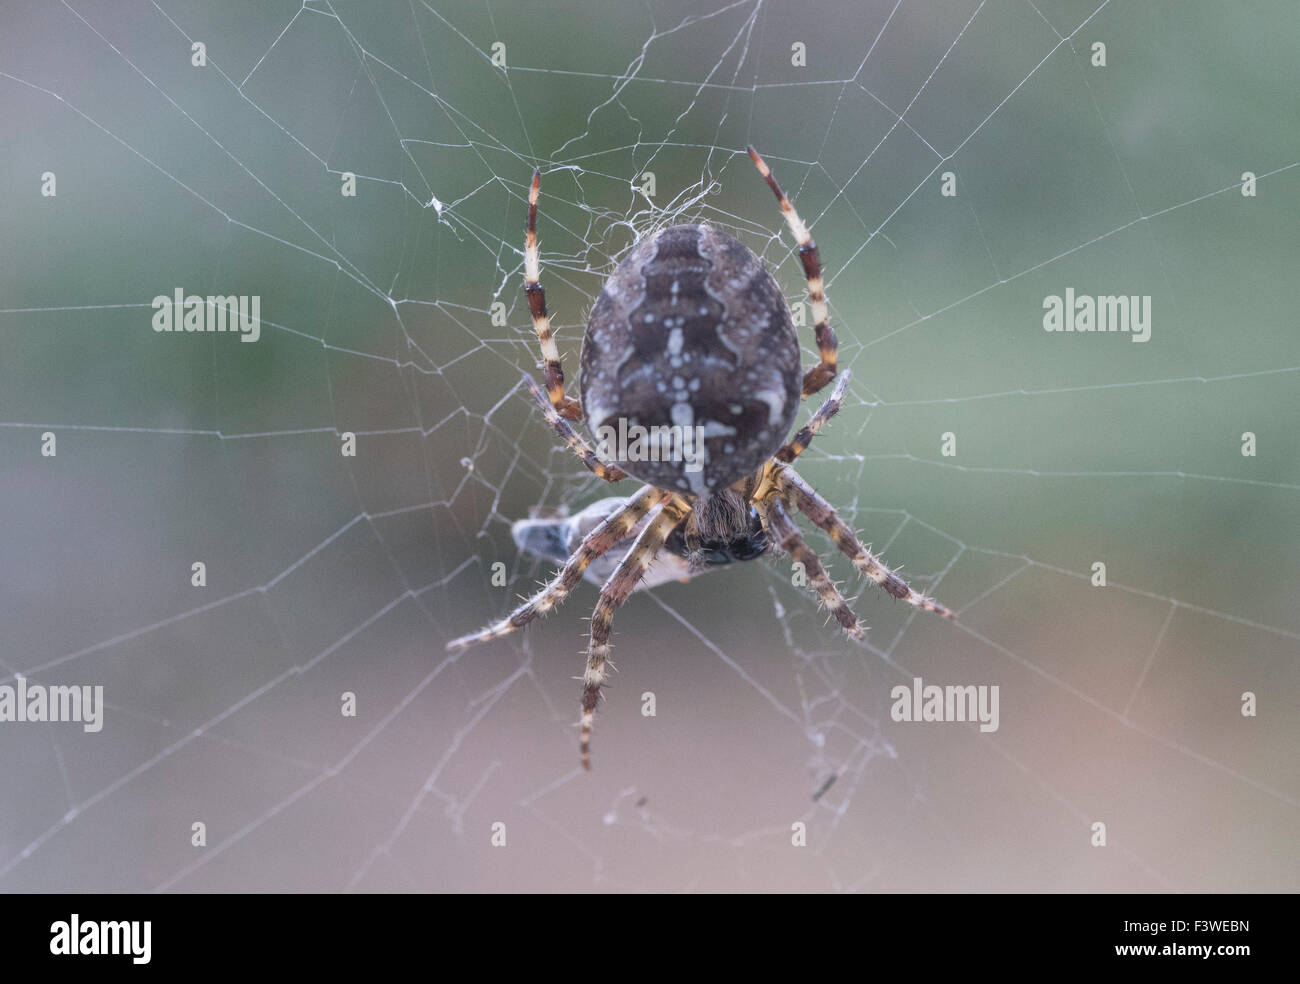 Spider in web with covered prey on an abstract background - Stock Image